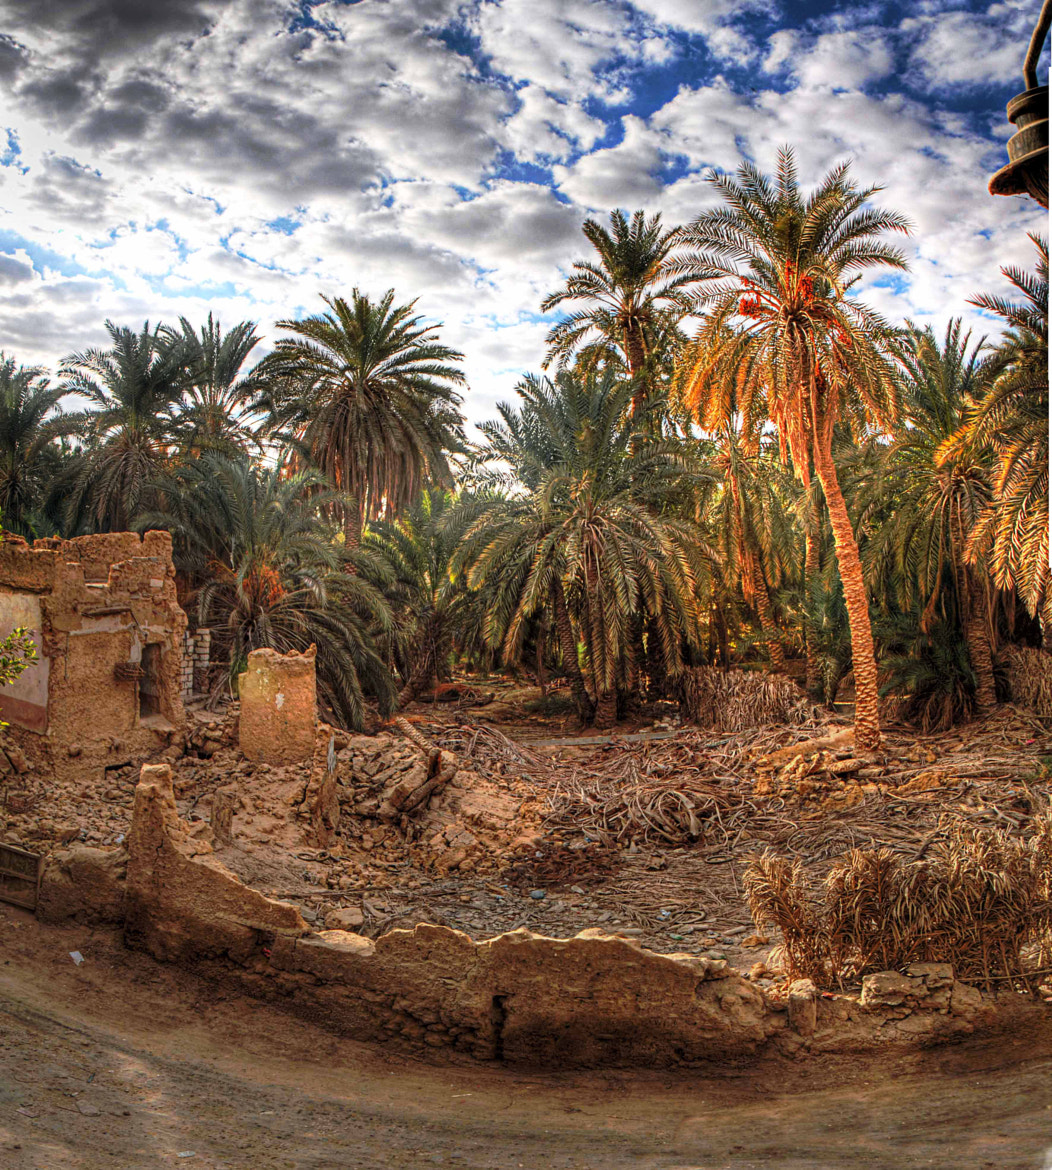 Photograph deserted Oasis by Ali El Hedek on 500px